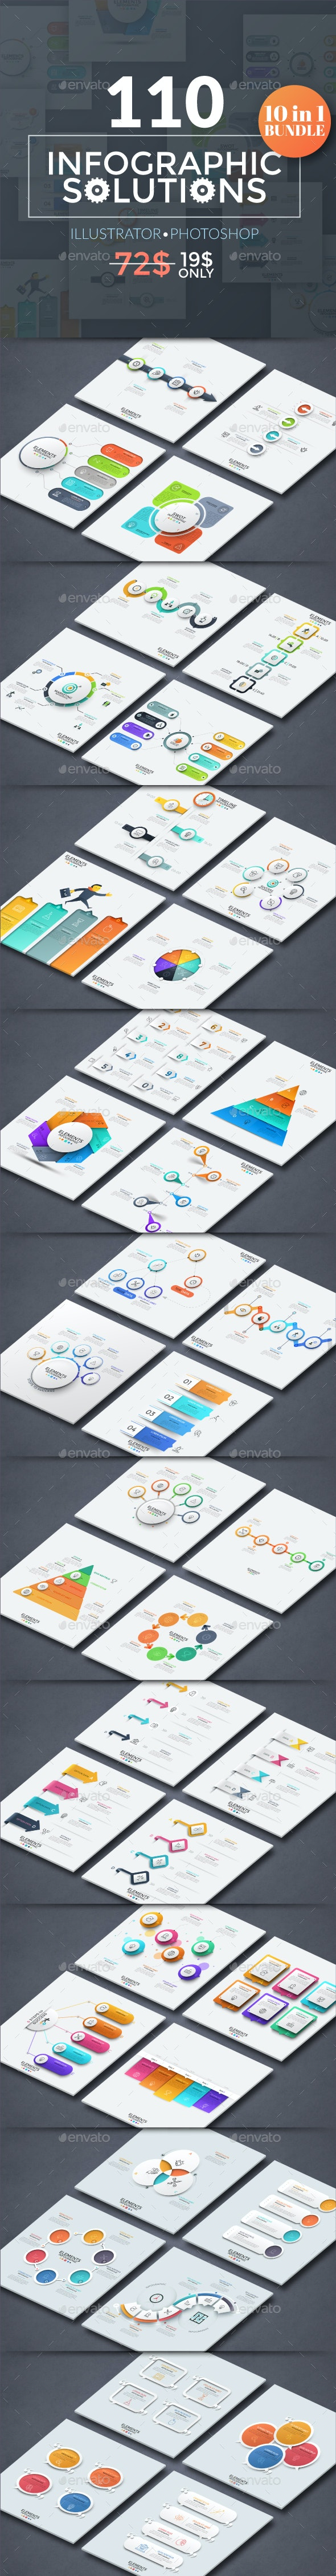 110 Infographic Solutions (10 in 1 Bundle) - Infographics